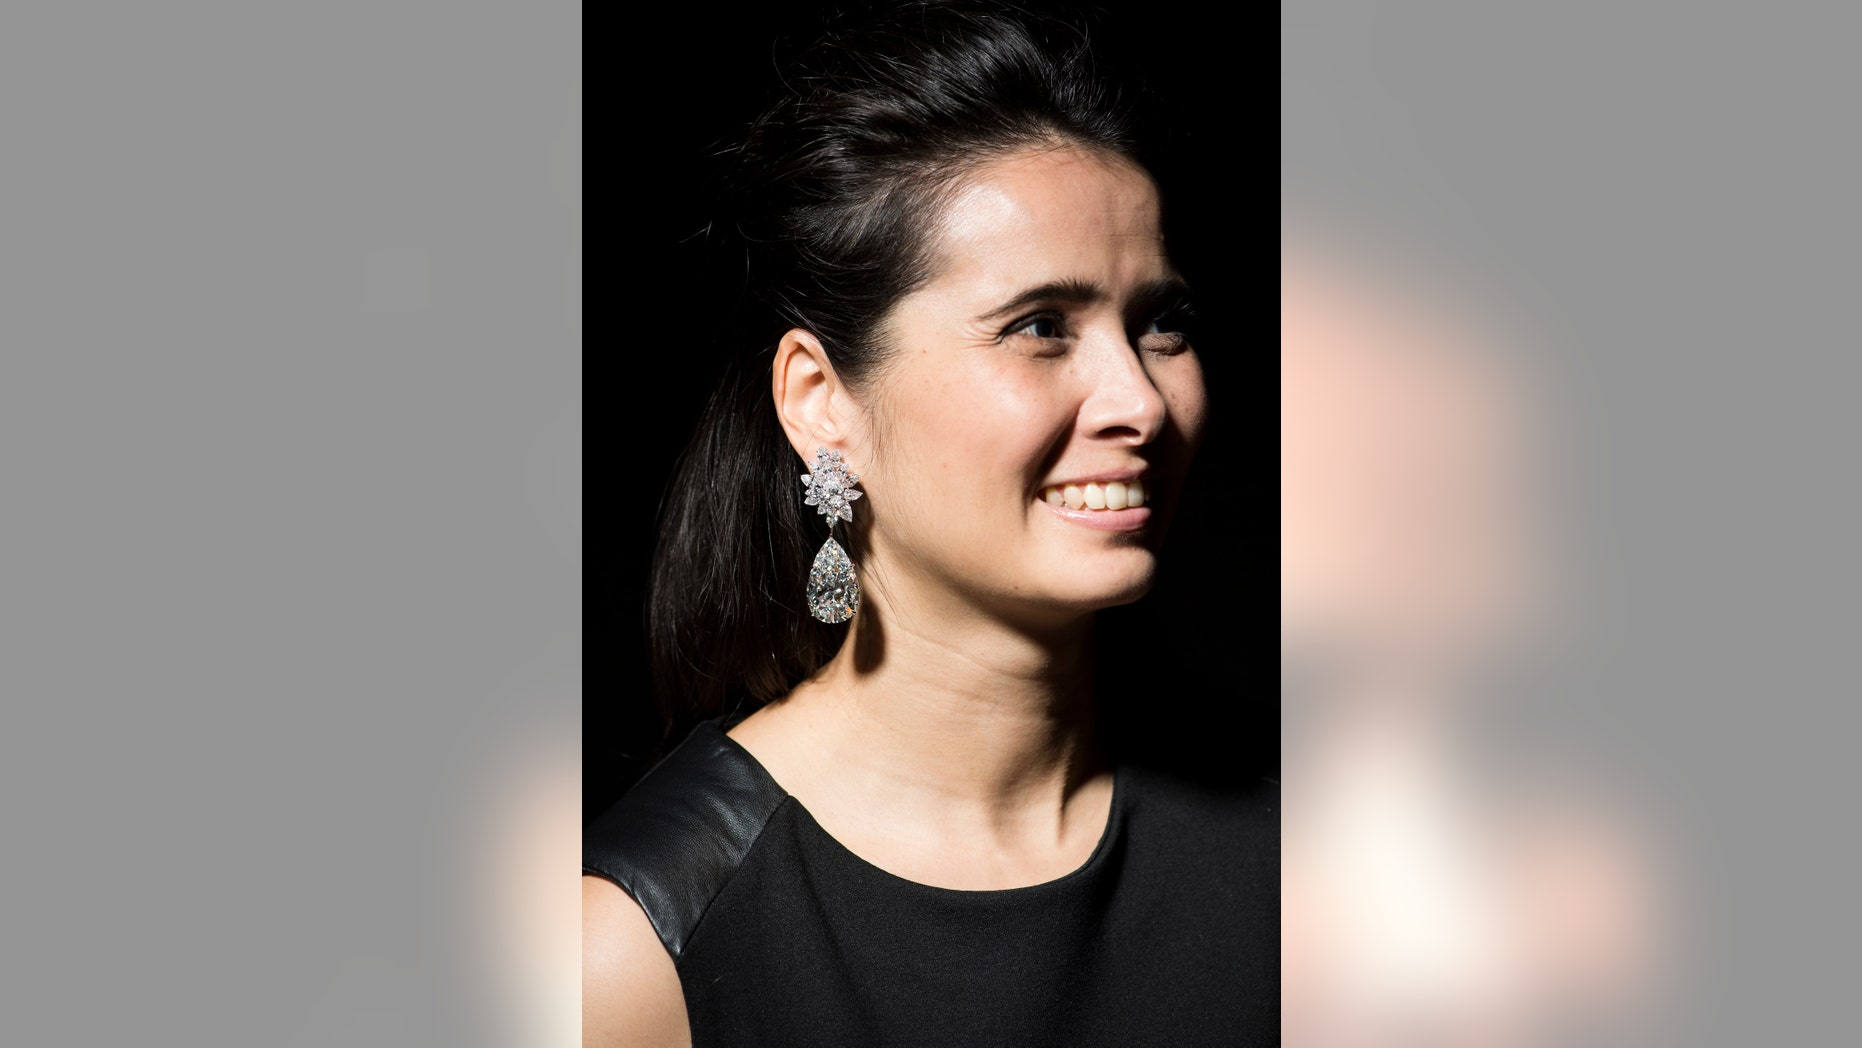 """A model displays a pair of stunning diamond earrings """"Miroir de l'Amour"""" weighing 52.55 and 50.47 carats during a Christie's press preview in Geneva, Switzerland, Thursday, Nov. 10, 2016."""